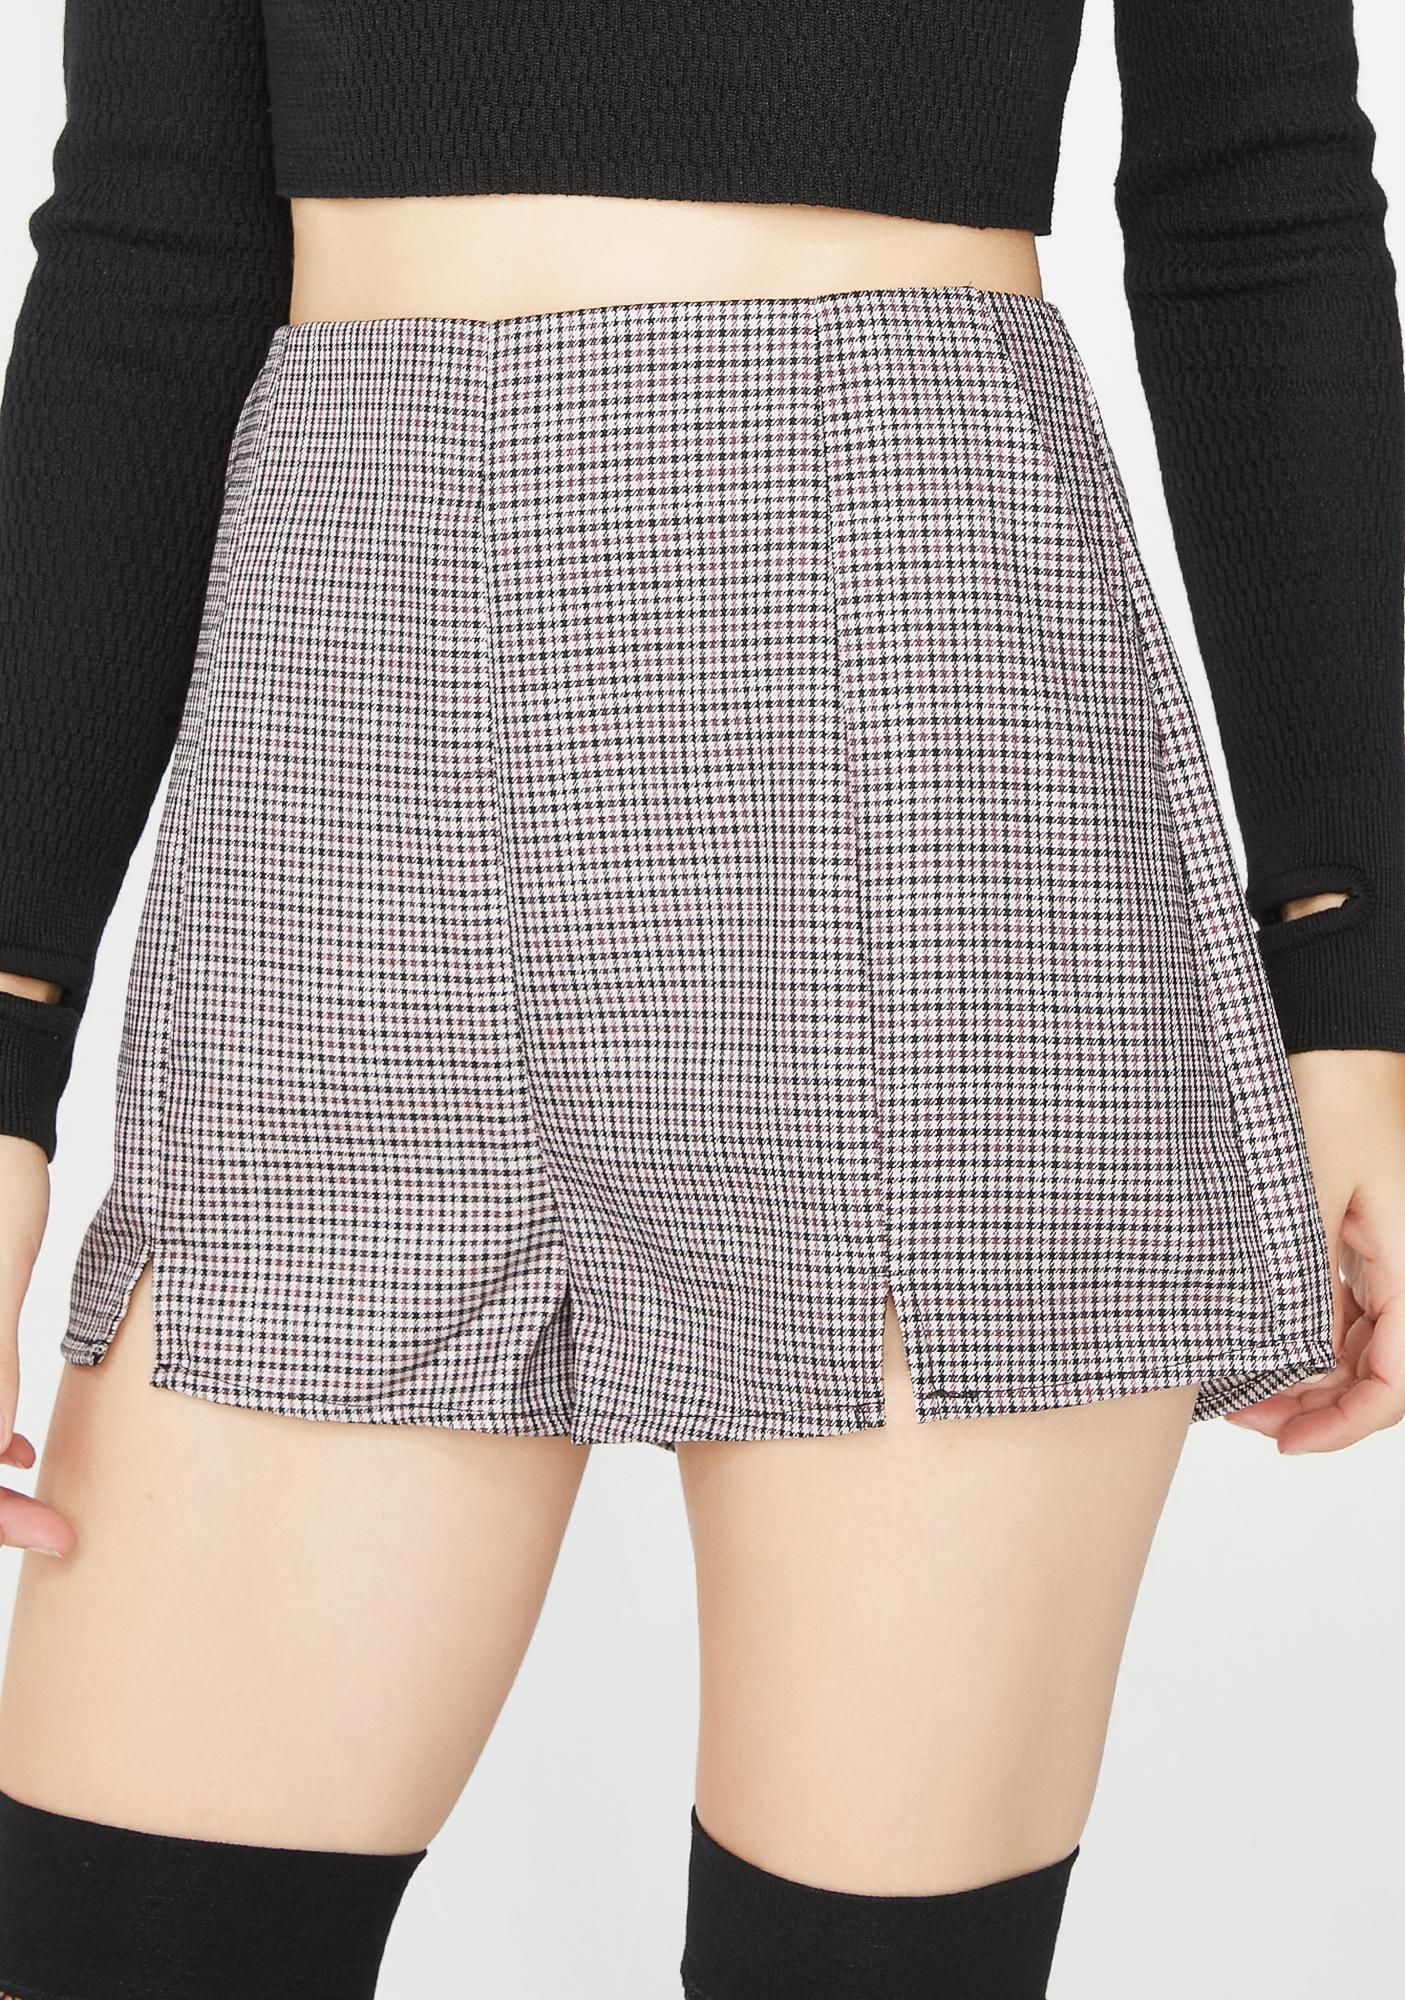 160e7e0a184999 Wild Honey Free, fast shipping on Bad Grl Plaid Shorts at Dolls Kill, an  online boutique for punk and rock fashion. Shop graphic tees, bodysuits, &  dresses.